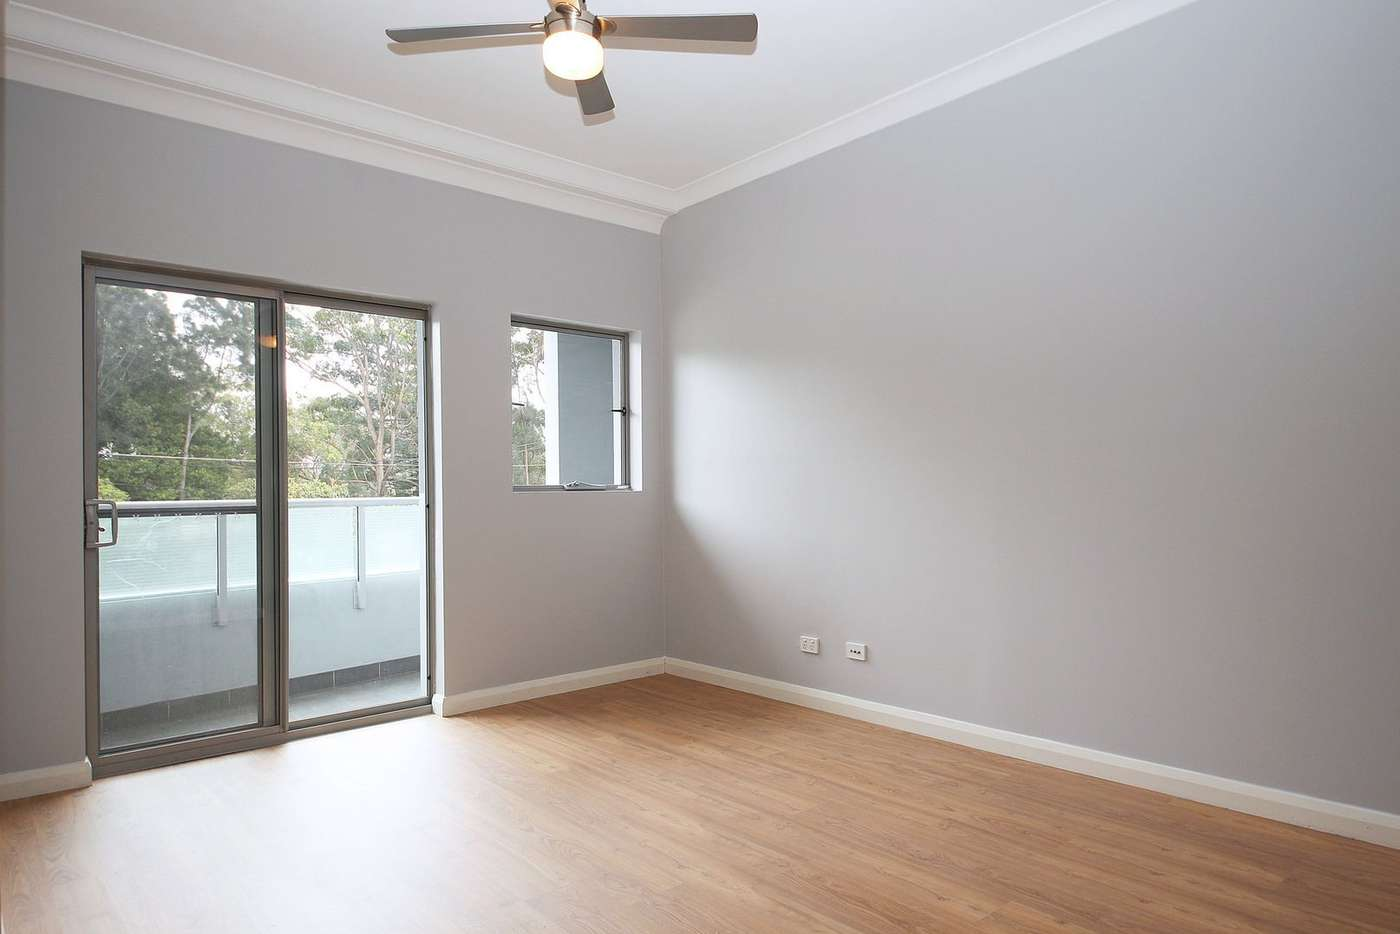 Sixth view of Homely apartment listing, 2/315 Bunnerong Road, Maroubra NSW 2035